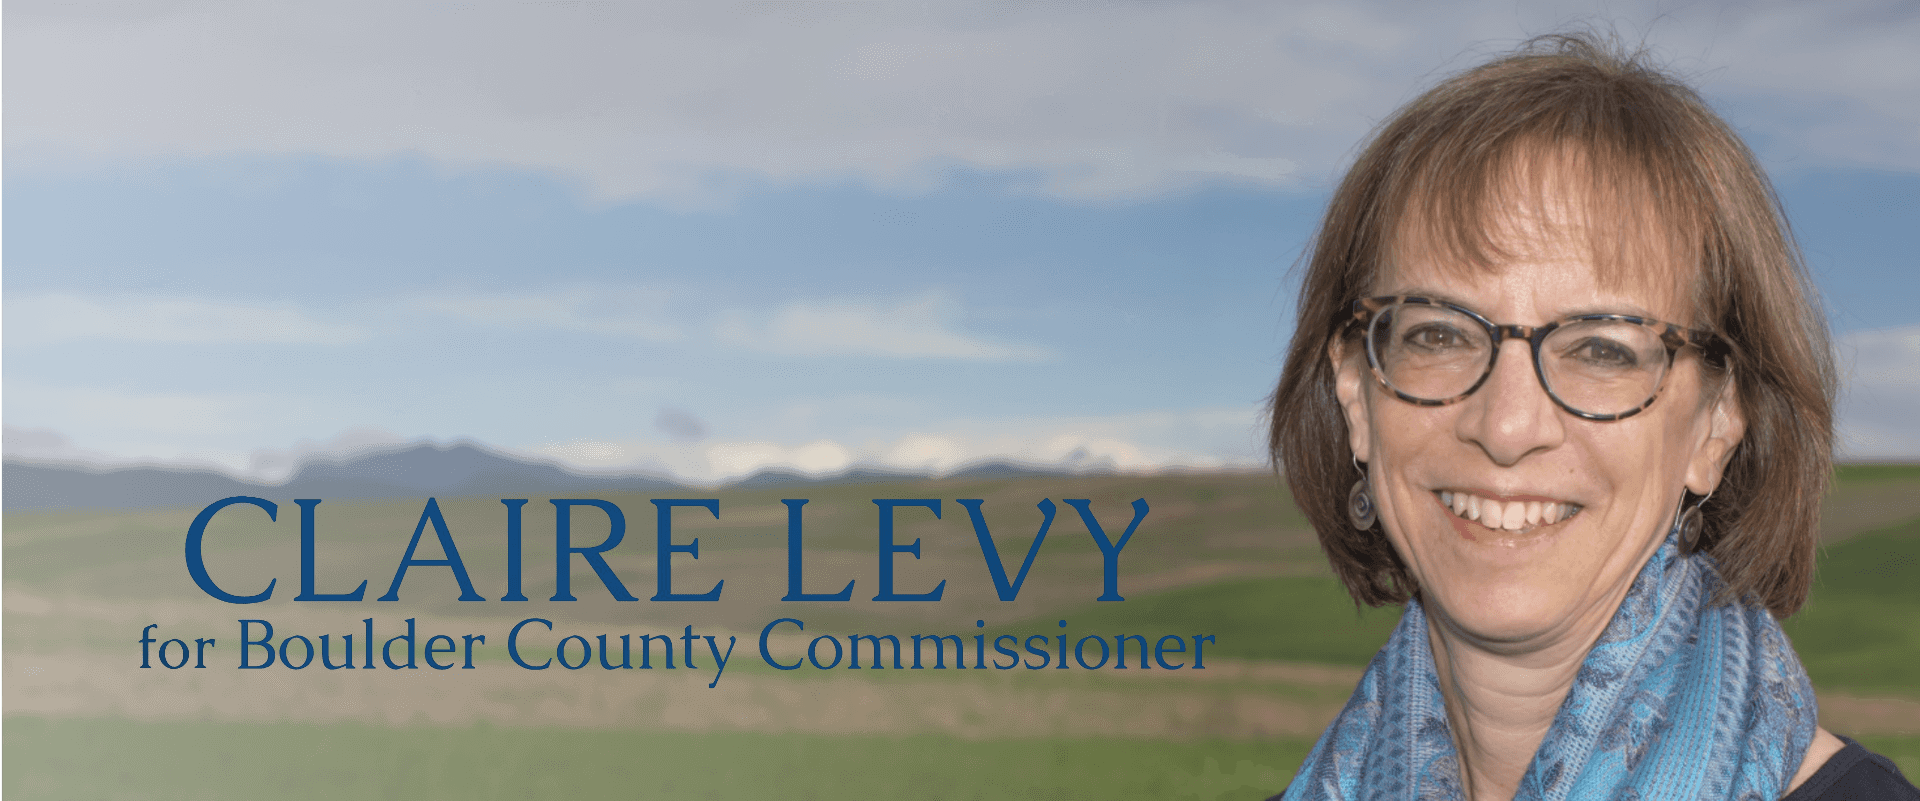 Claire Levy for Boulder County Commissioner